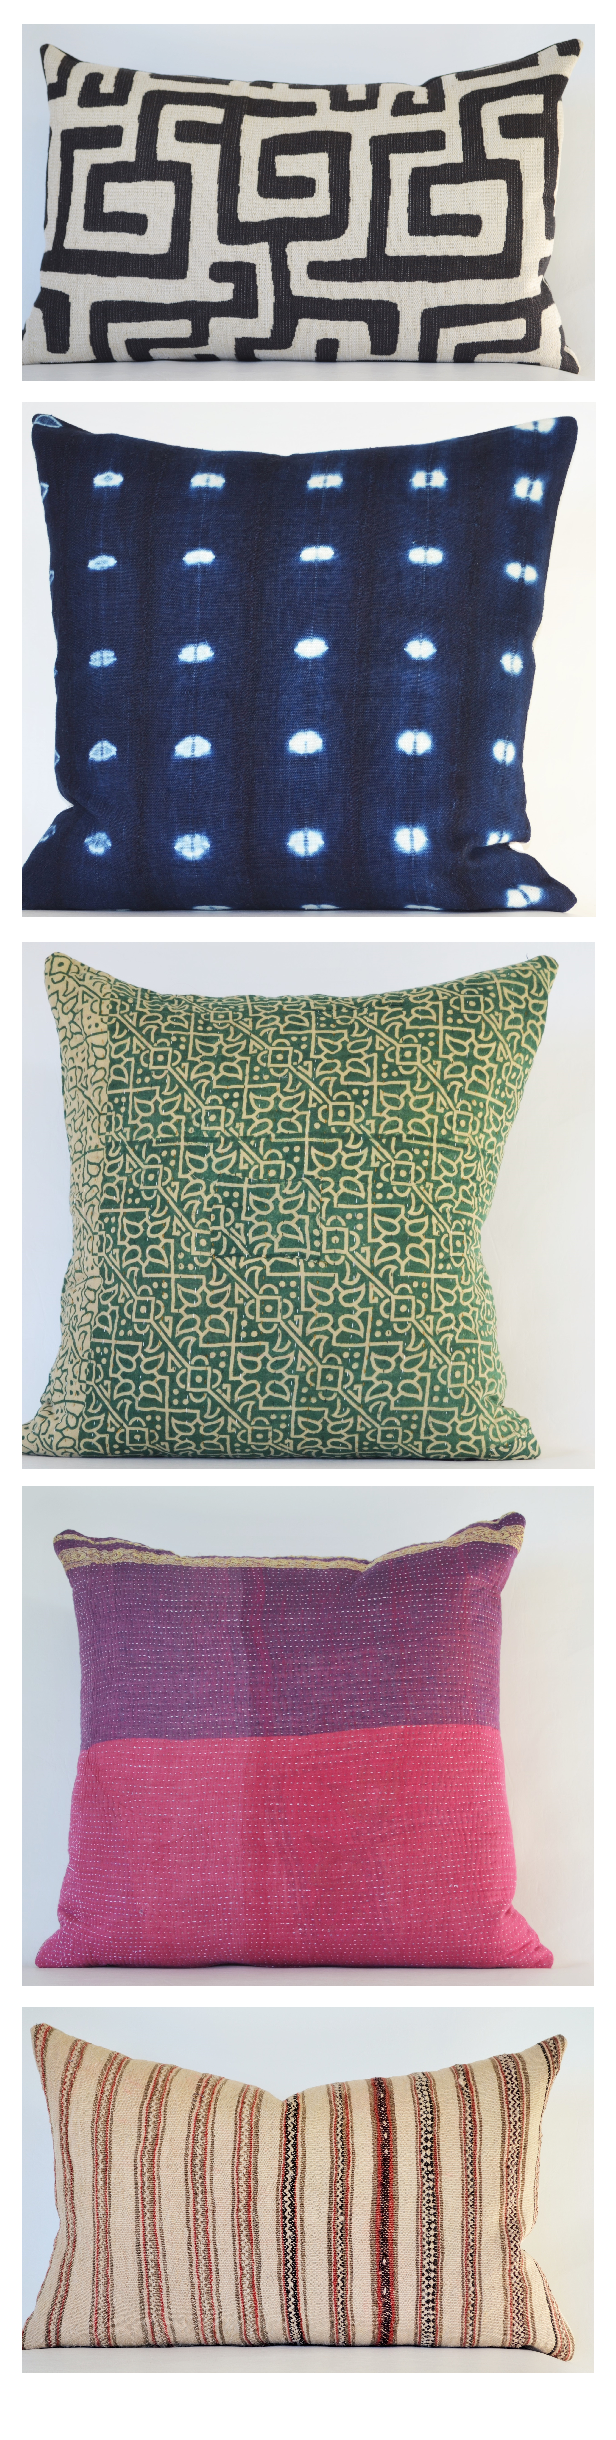 pillow grid